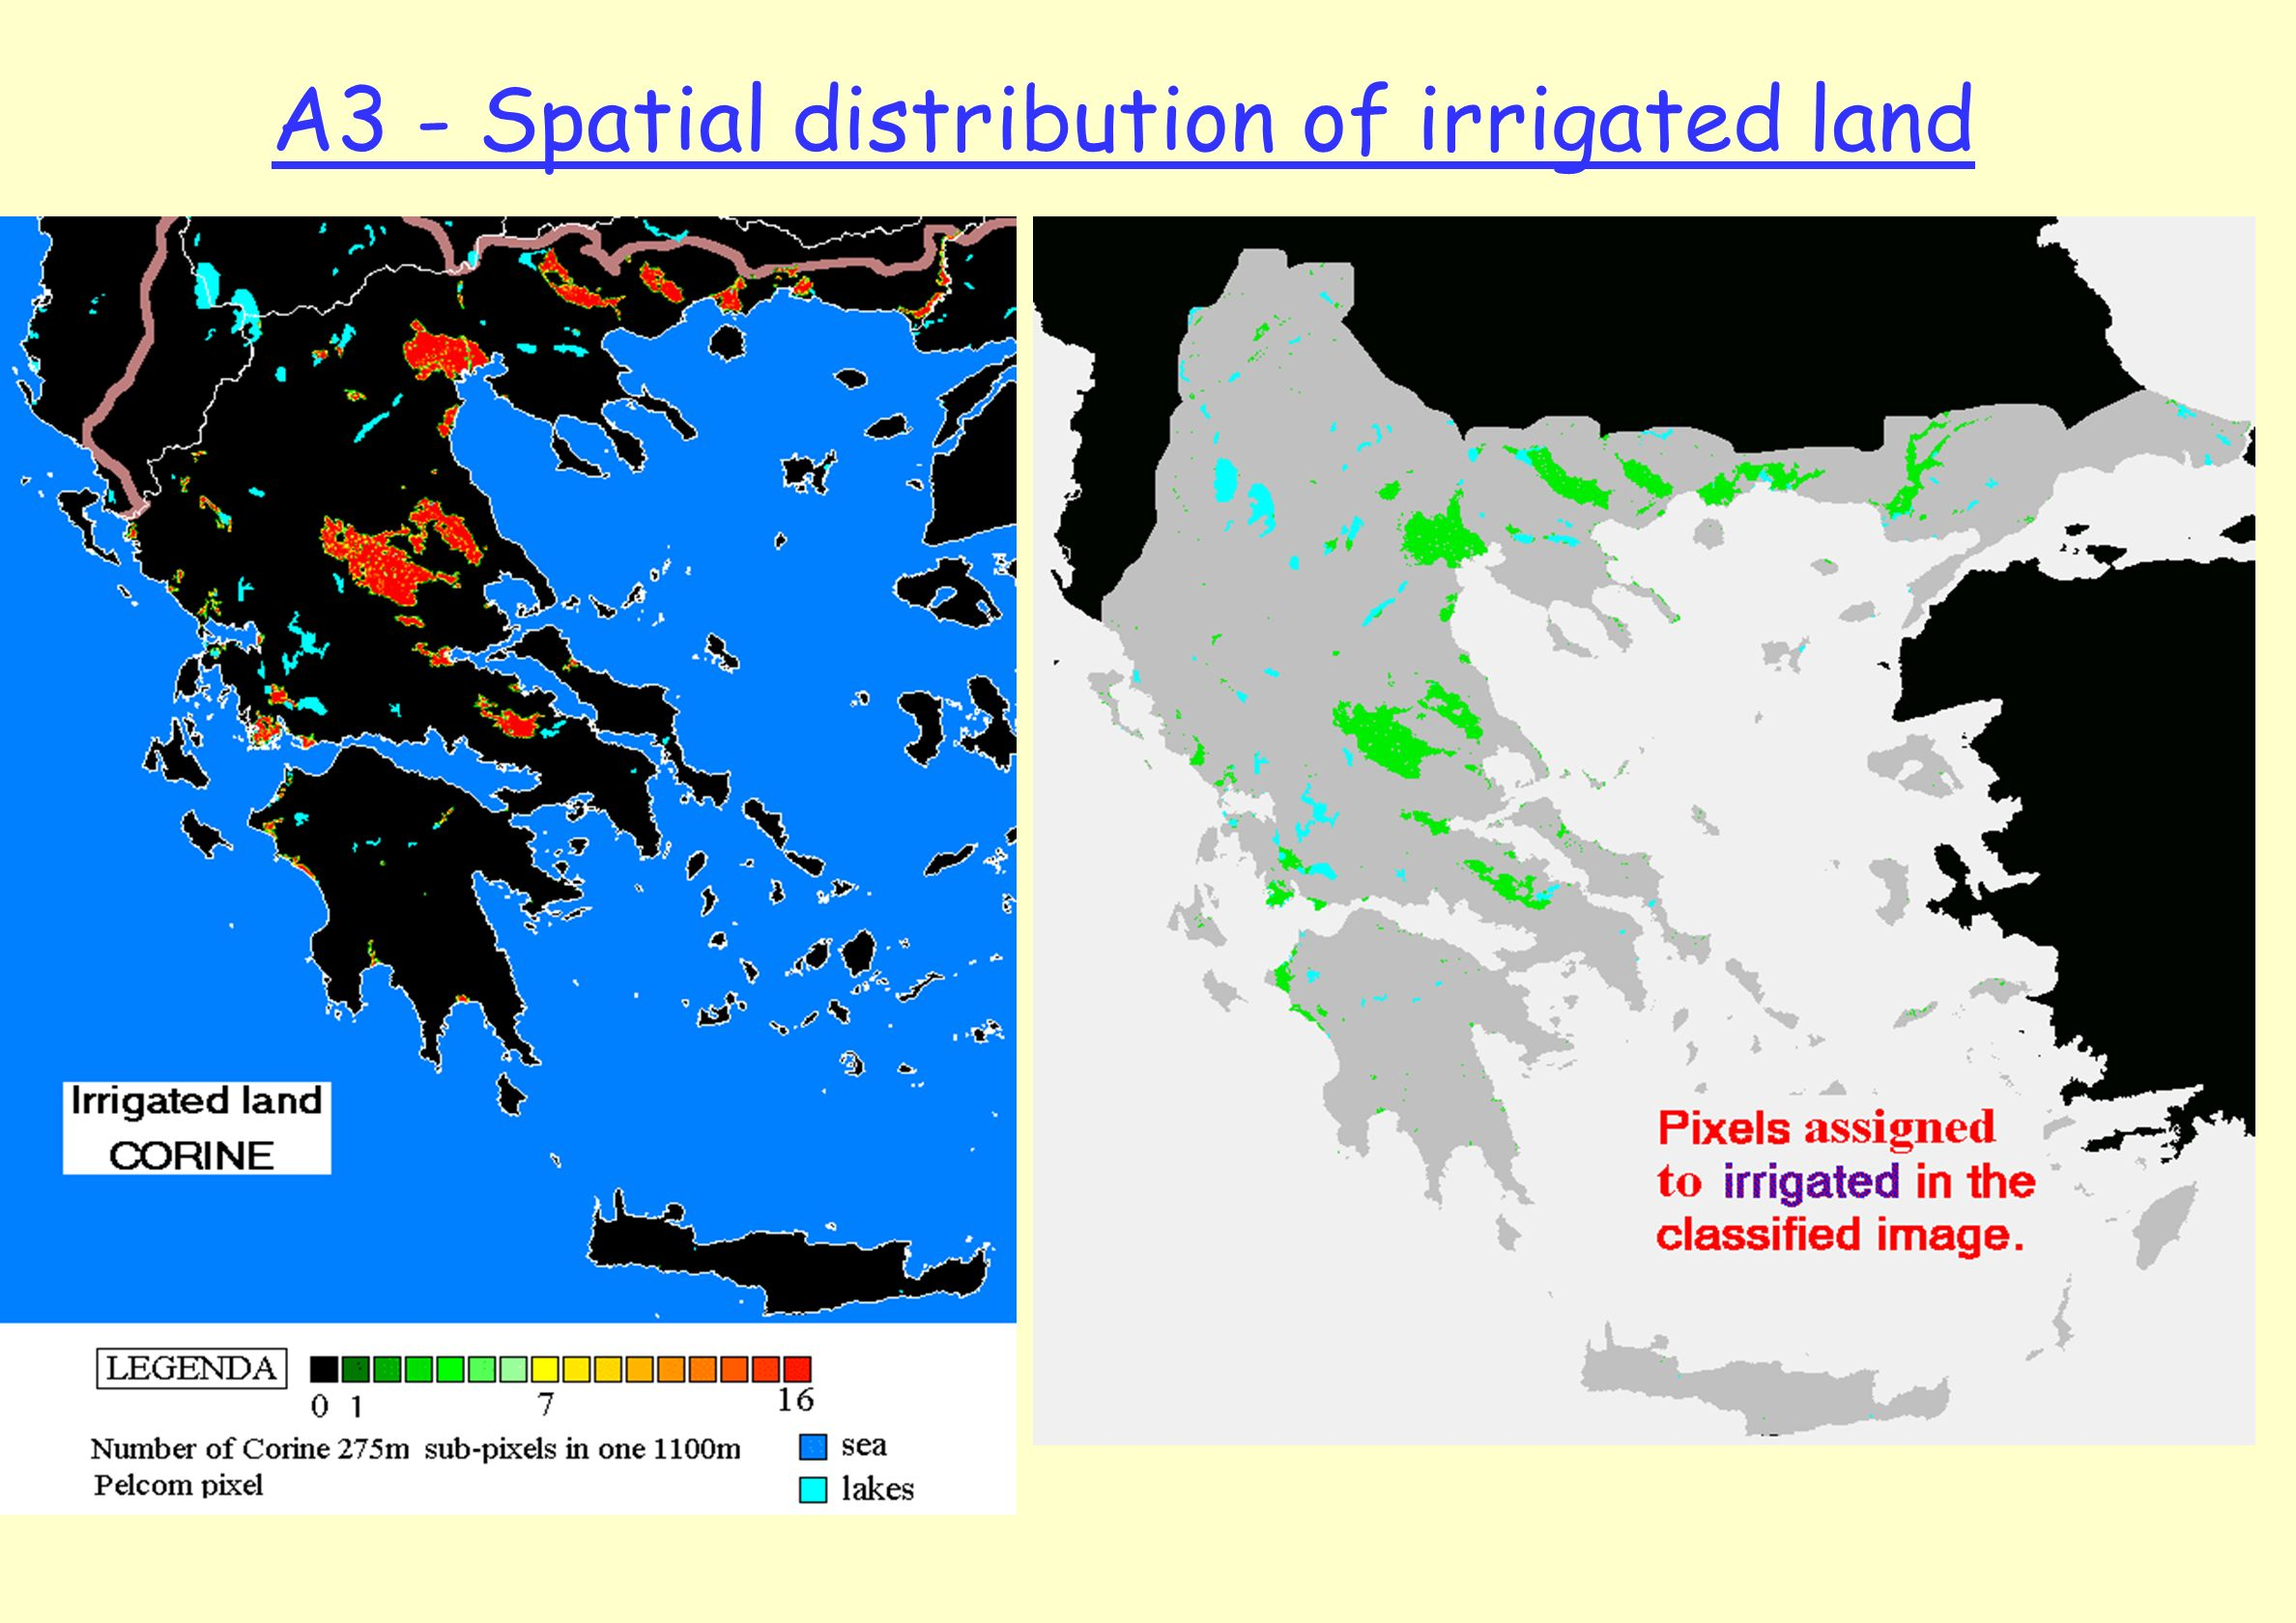 A3 - Spatial distribution of irrigated land